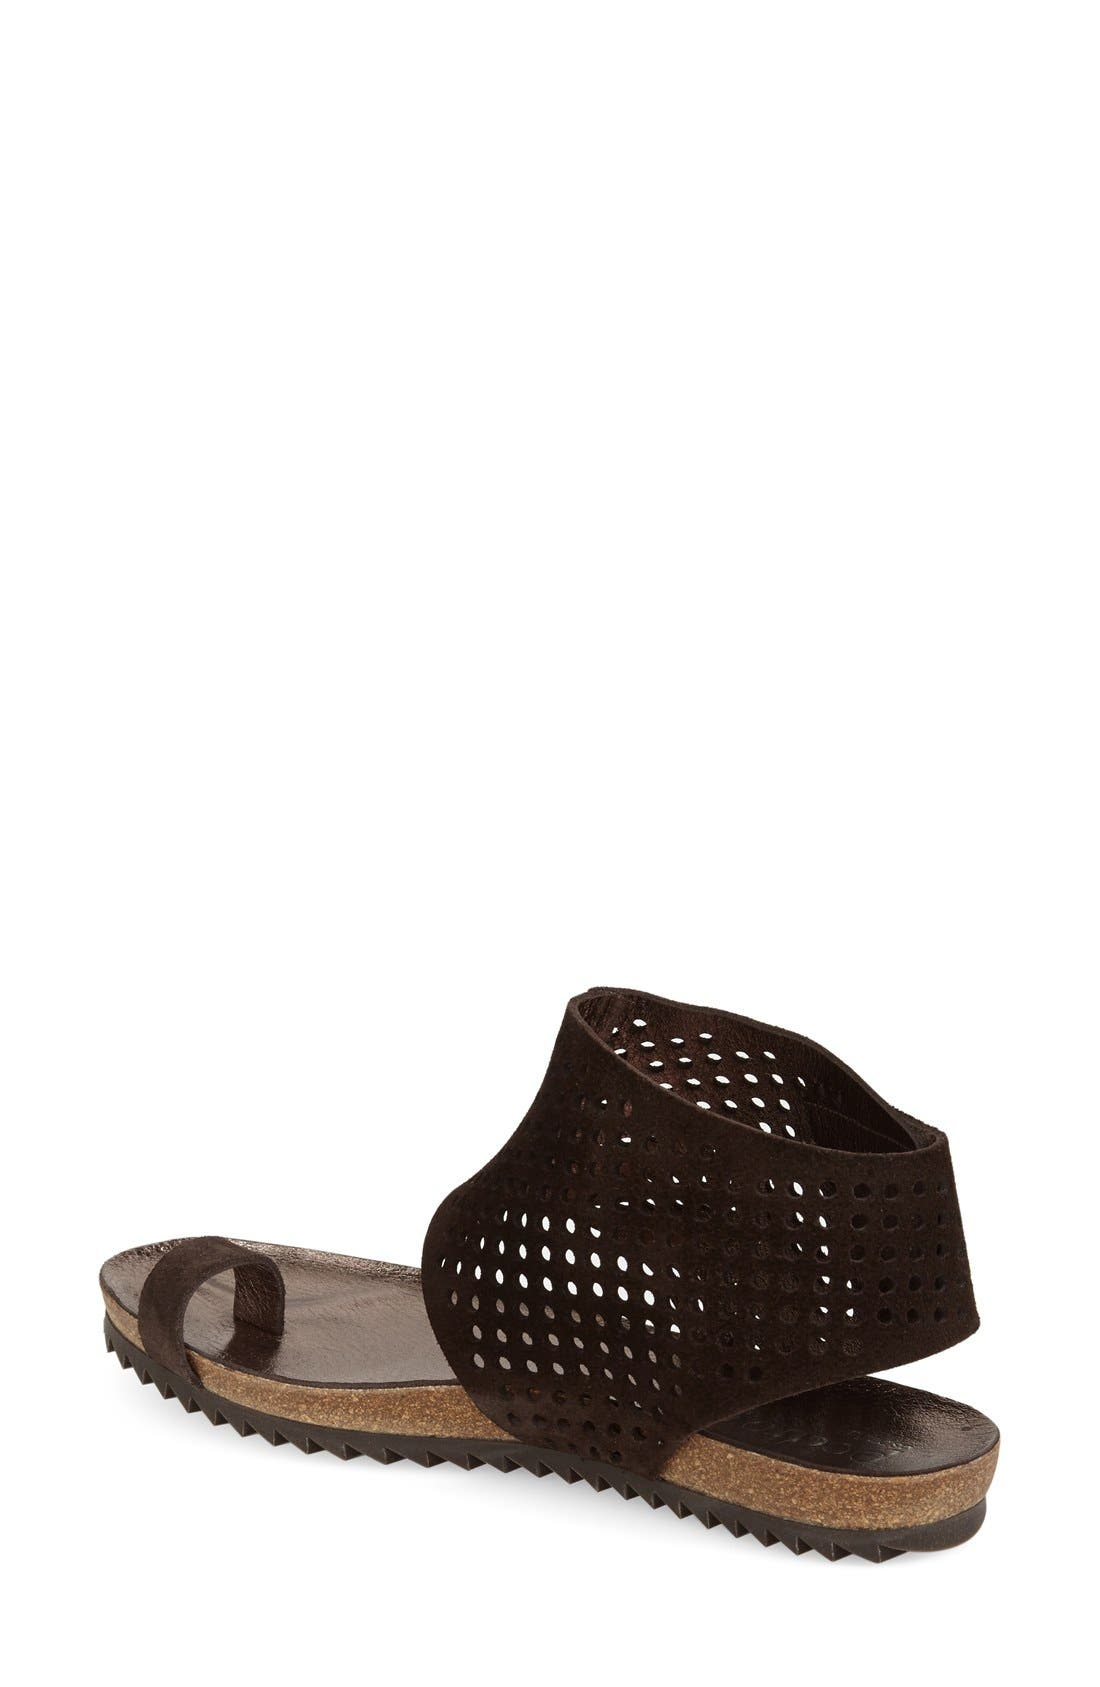 Alternate Image 2  - Pedro Garcia Perforated Ankle Cuff Sandal (Women)